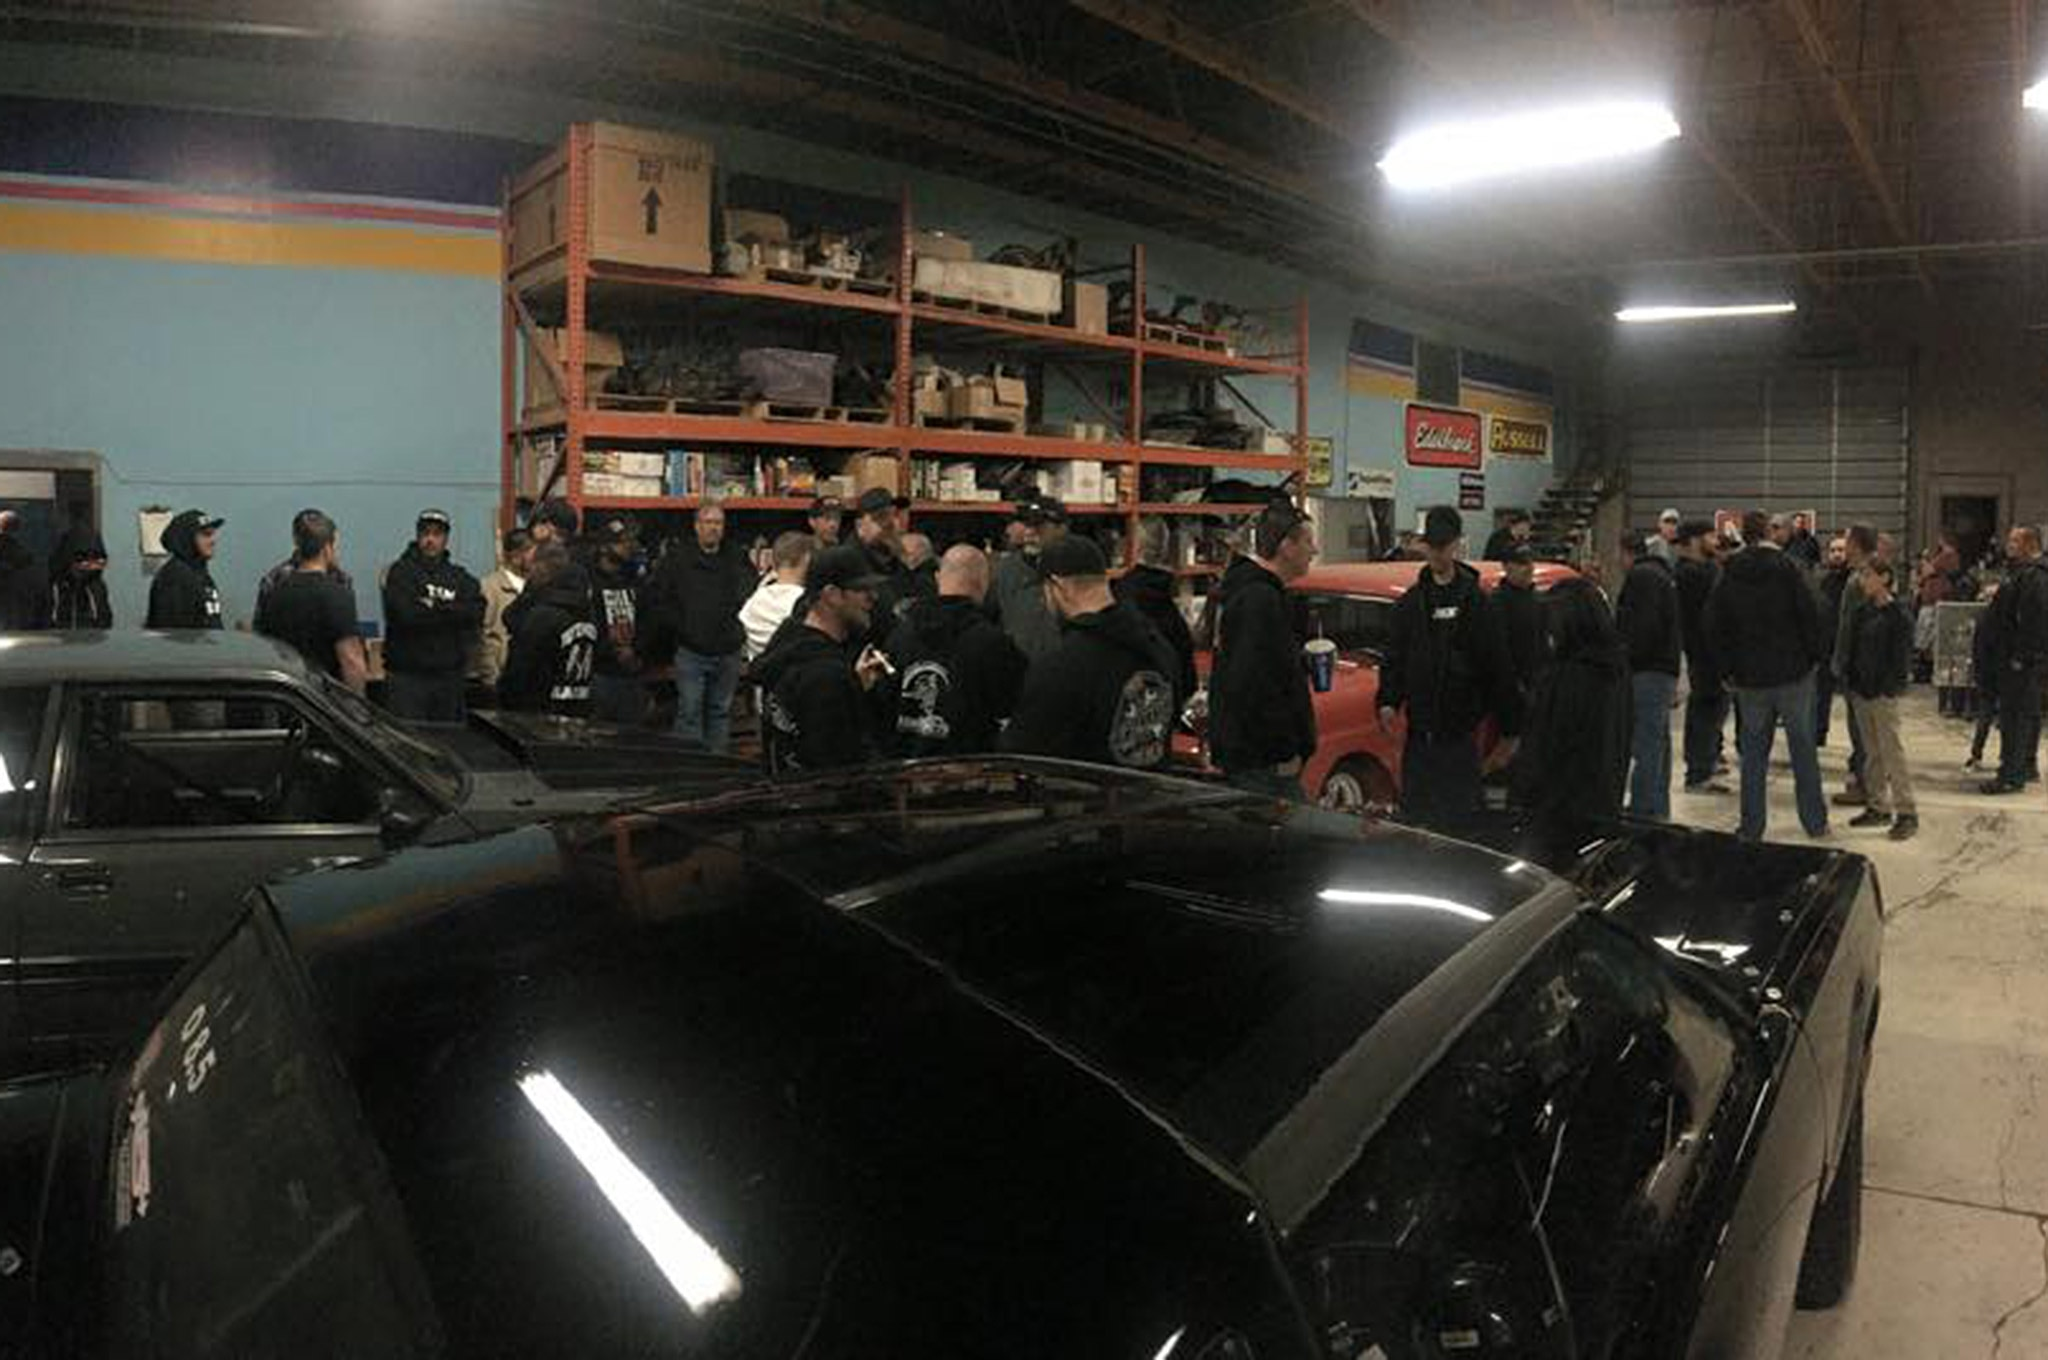 West Coast Street Outlaws Preparing To Film Race Garage